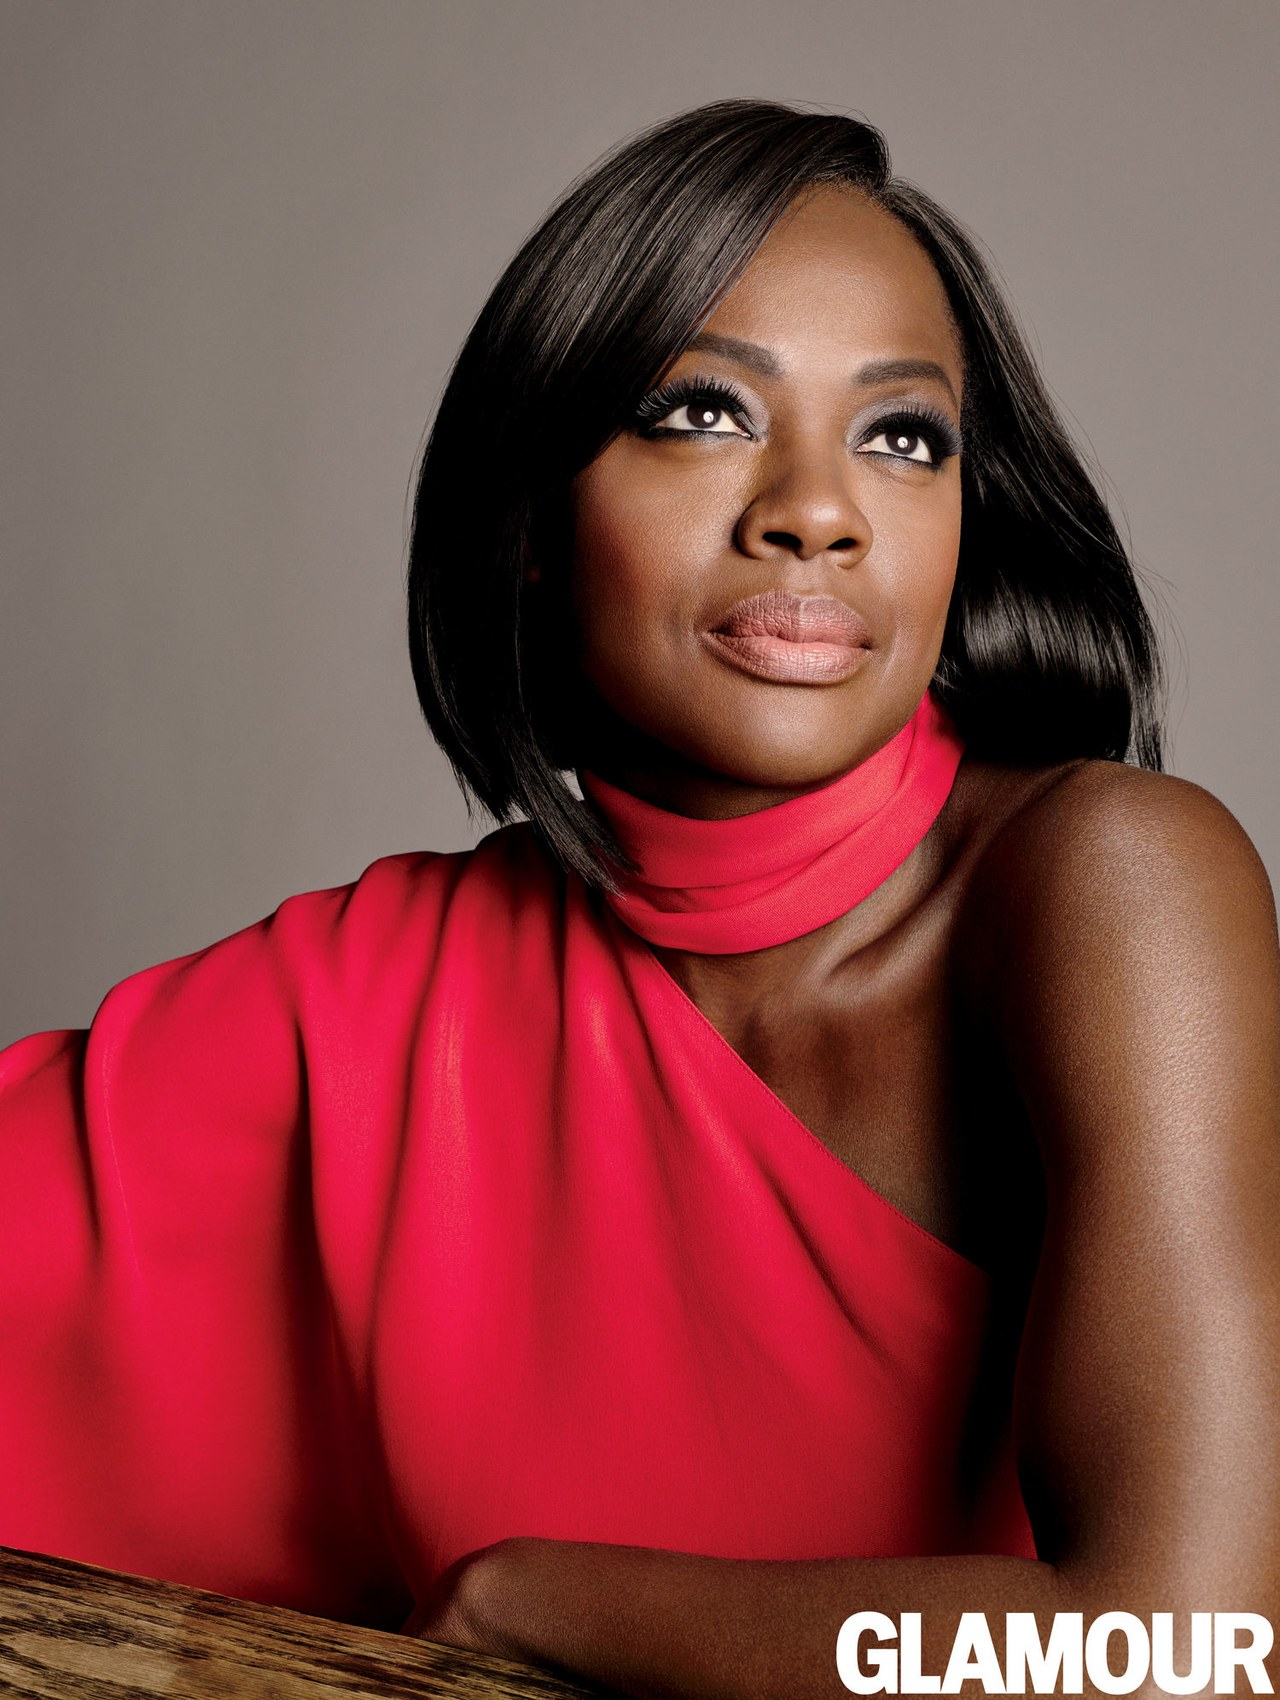 Viola Davis - First and only black woman to win the Triple Crown of acting